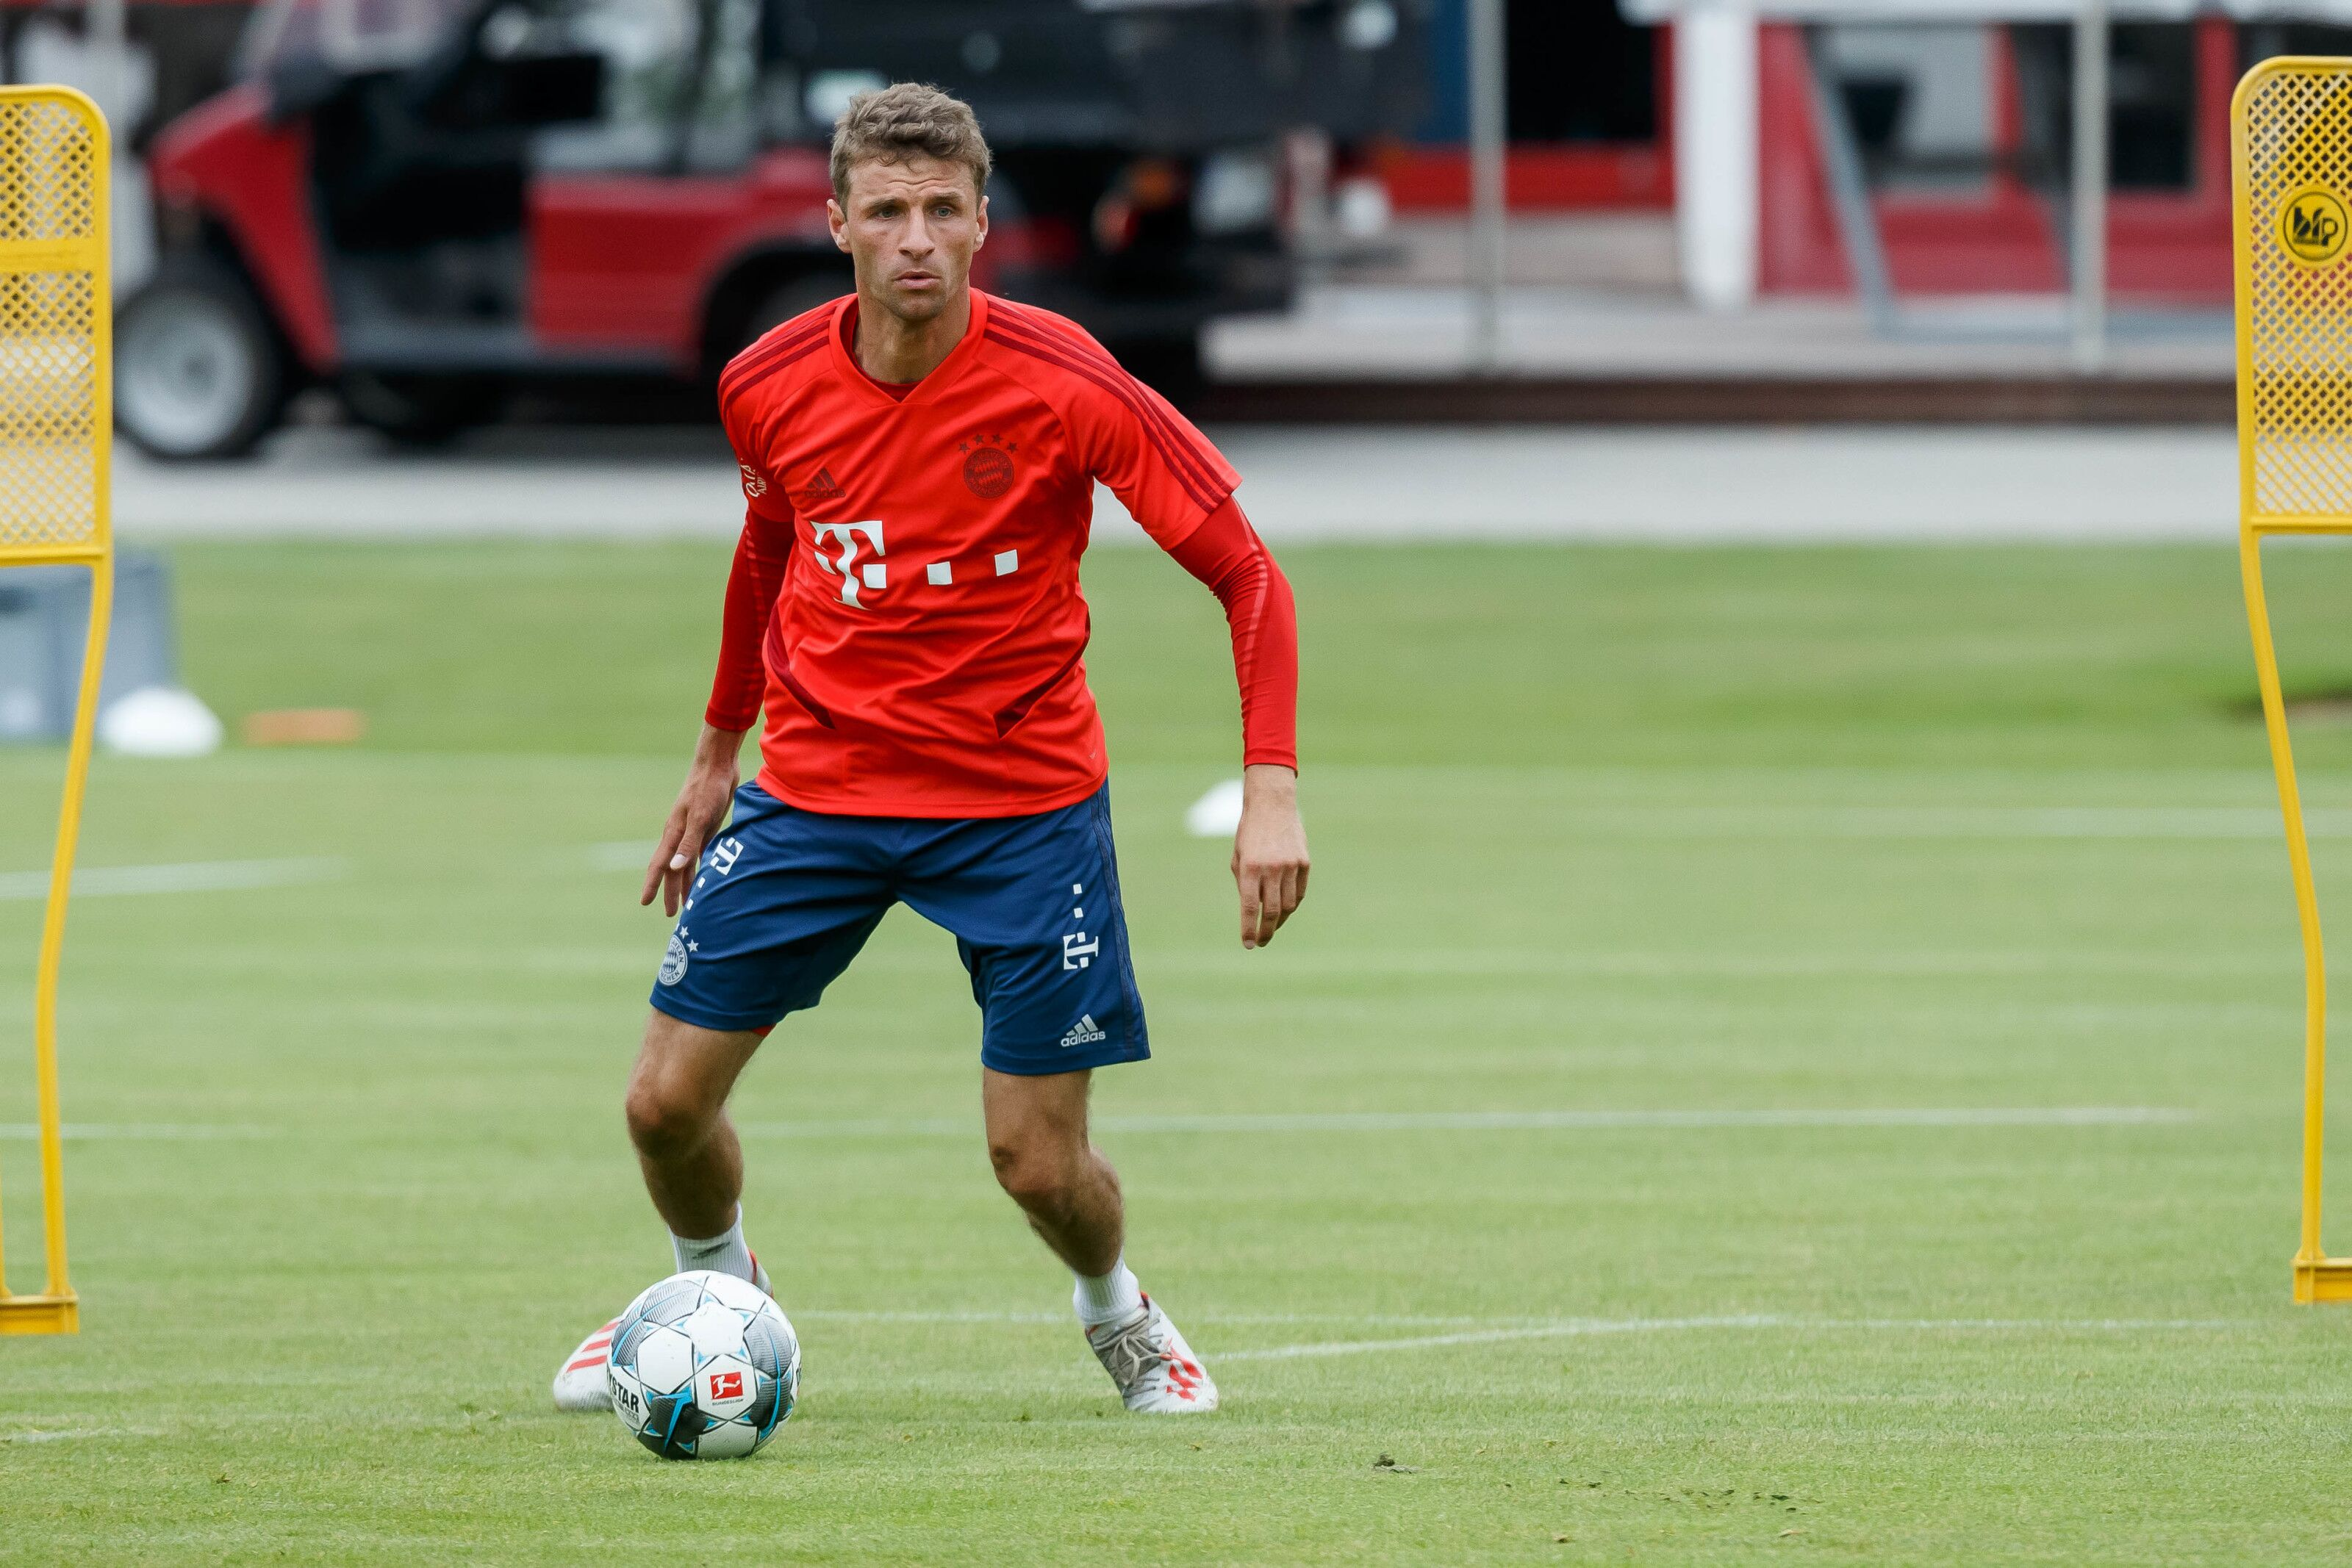 Bayern Munich: Thomas Muller excited about title tussle with BVB